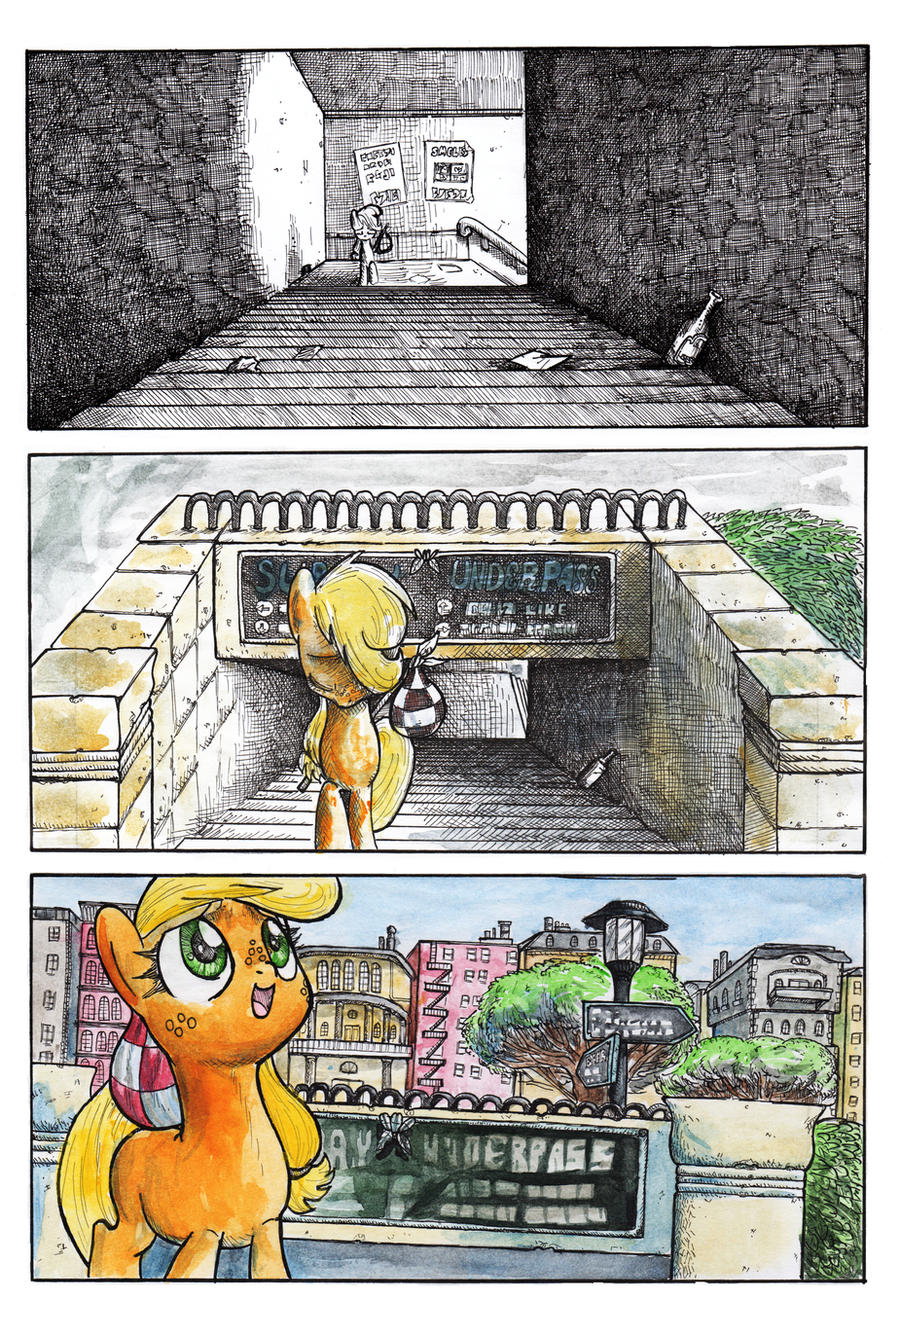 Lost in Manehattan: Hope by SmellsLikeBeer